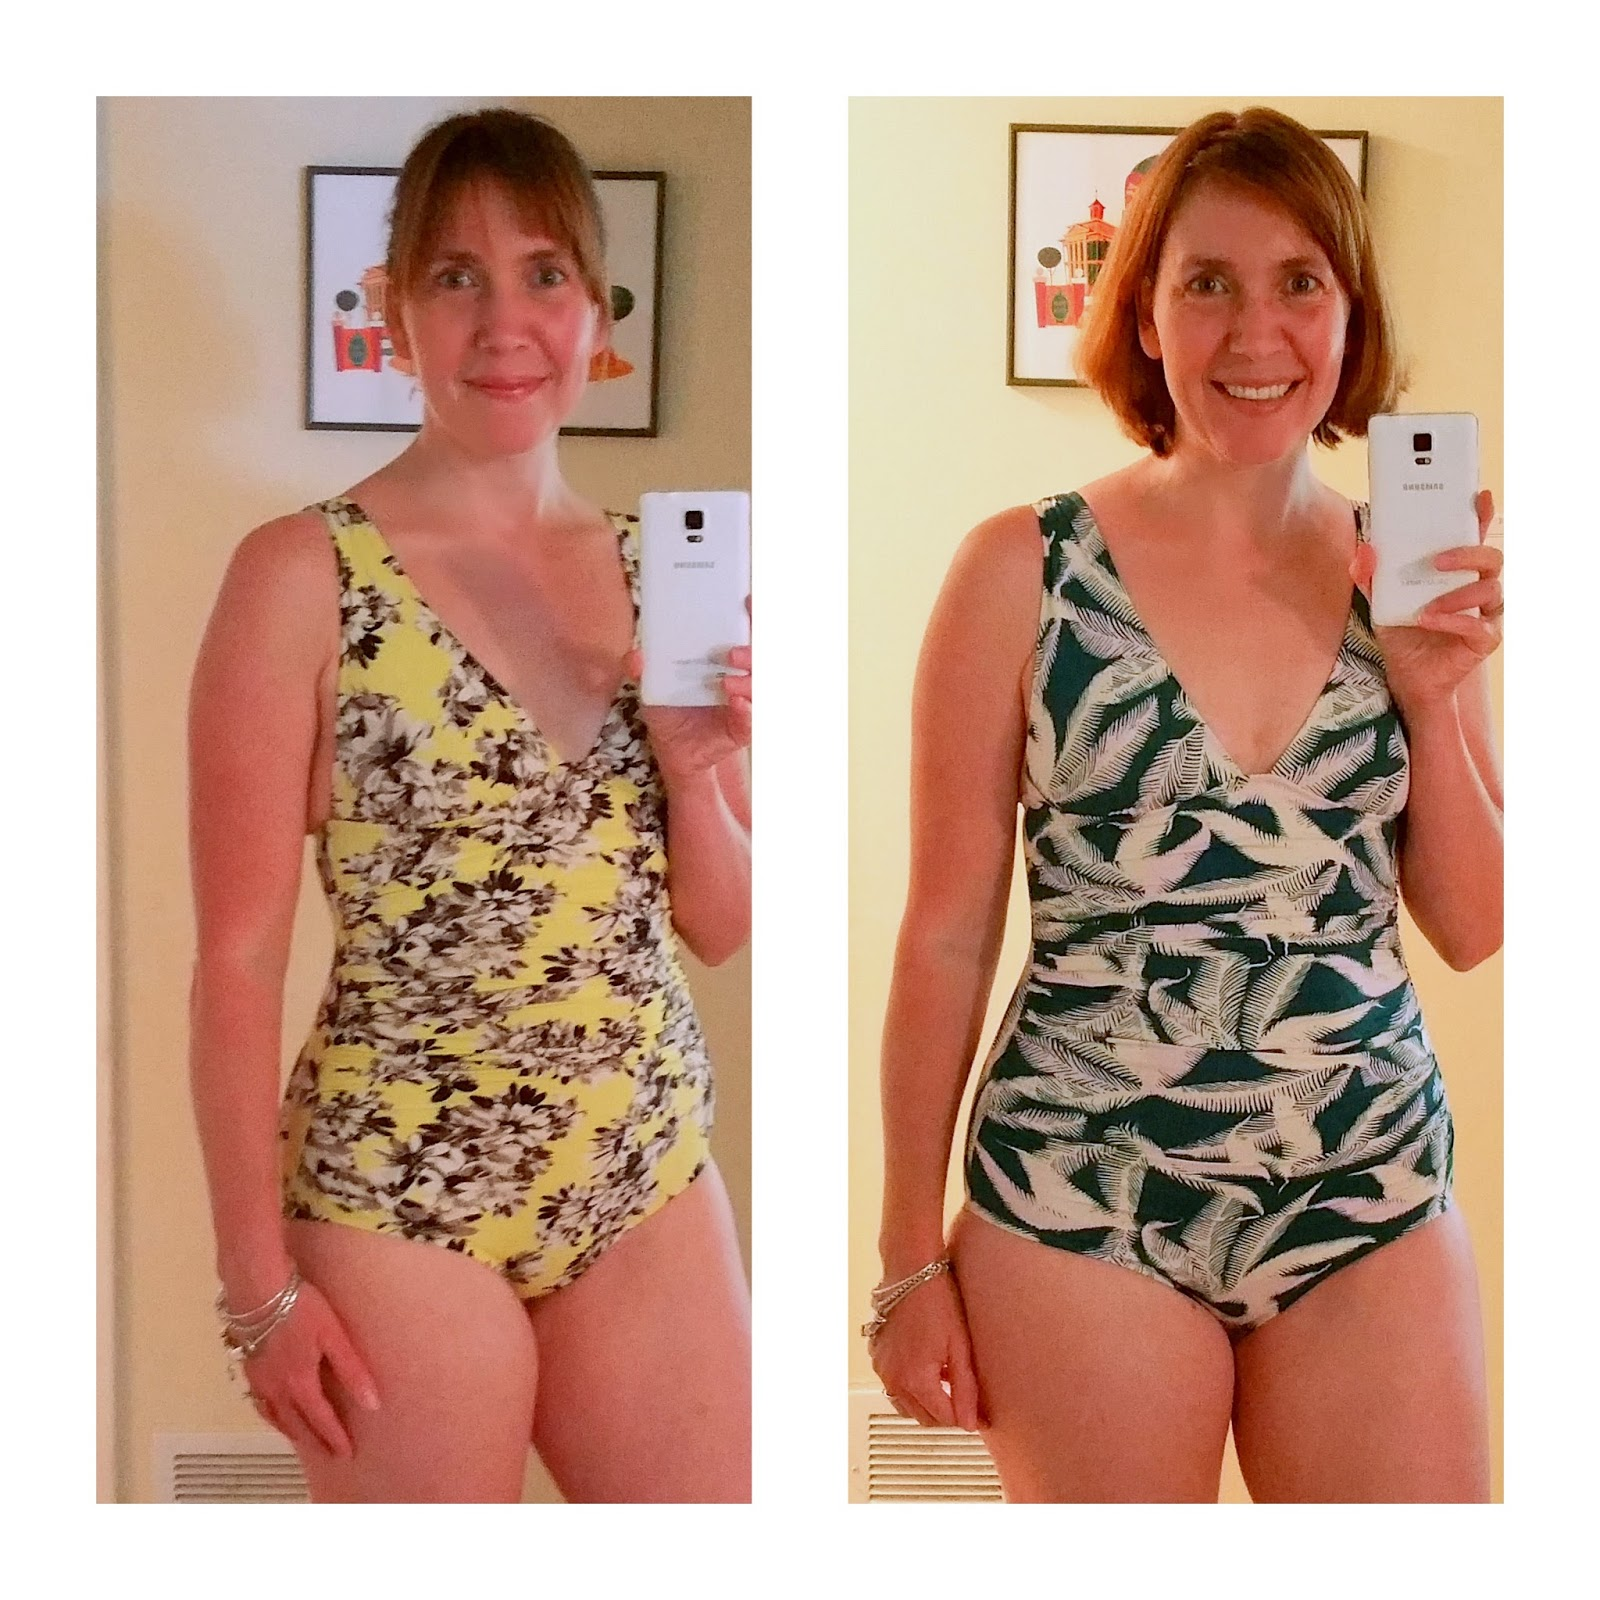 cc98ebc549 Tropical Fern Ruched Femme One Piece Suit (at right). I have been  purchasing these suits for years now. The one on the left is from last  summer